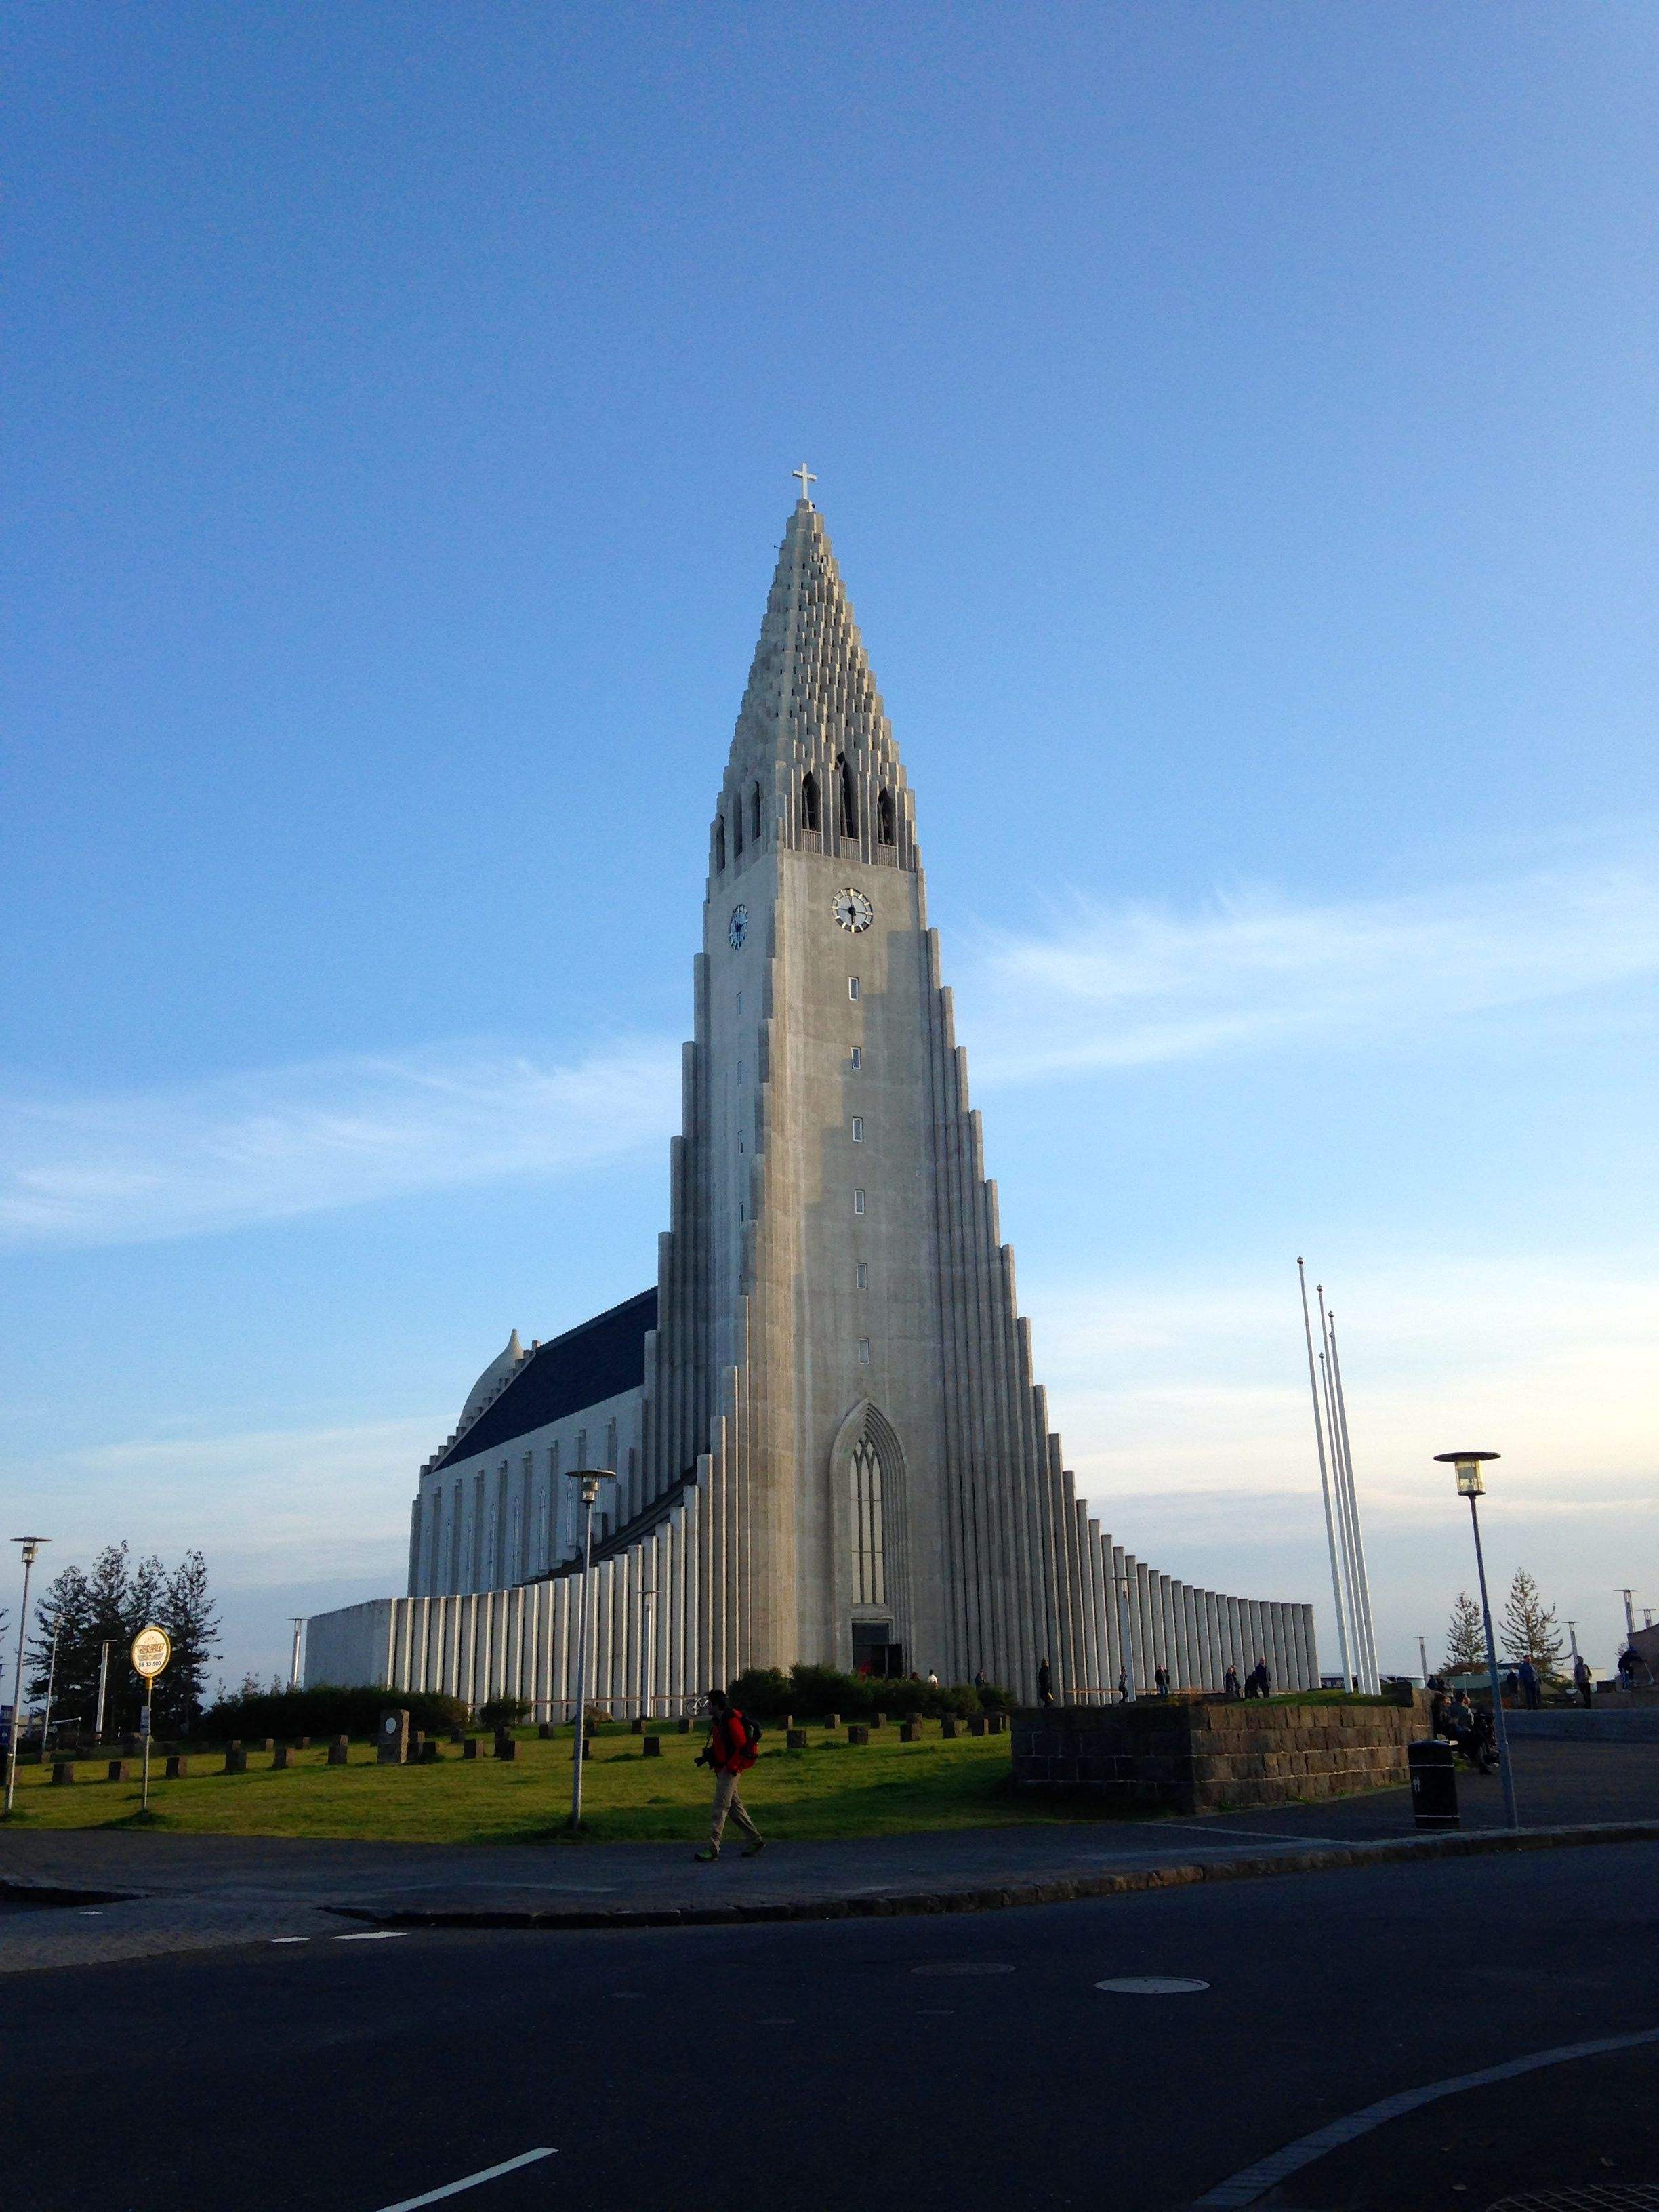 Reykjavik, Iceland. Hallgrímskirkja is a Lutheran parish church, is the largest church in Iceland and among the tallest structures in Iceland.